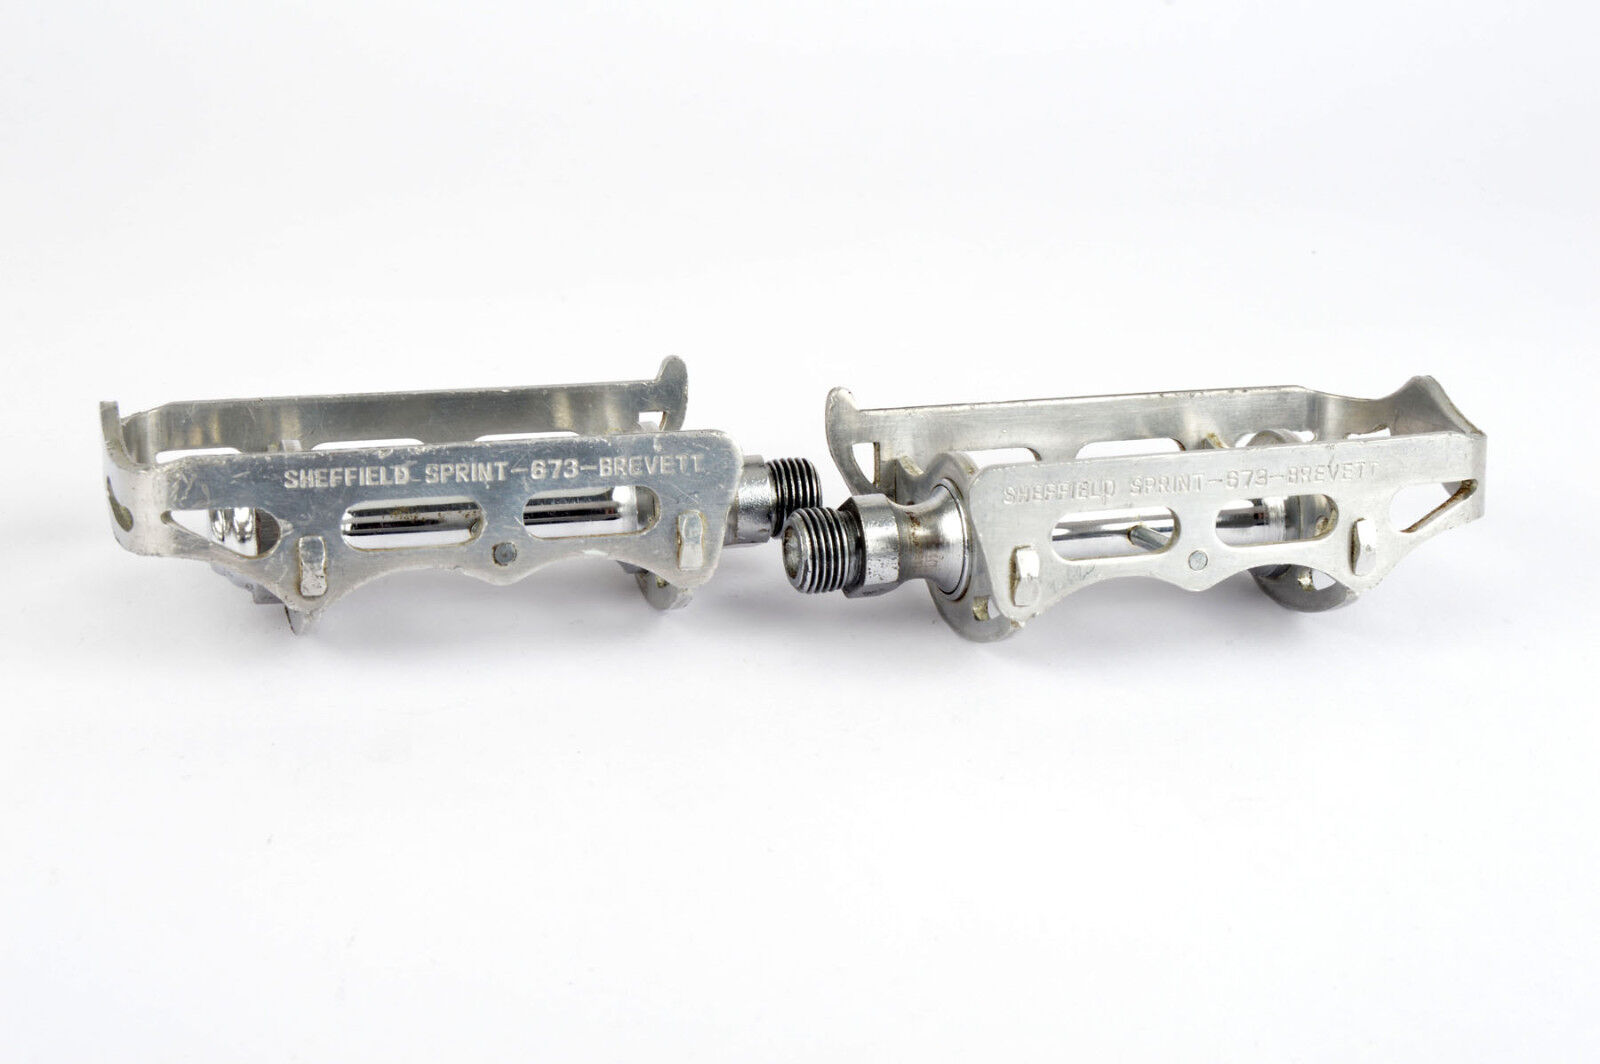 Sheffield Sprint 673 Pedals with english threading from the 1960s - 70s